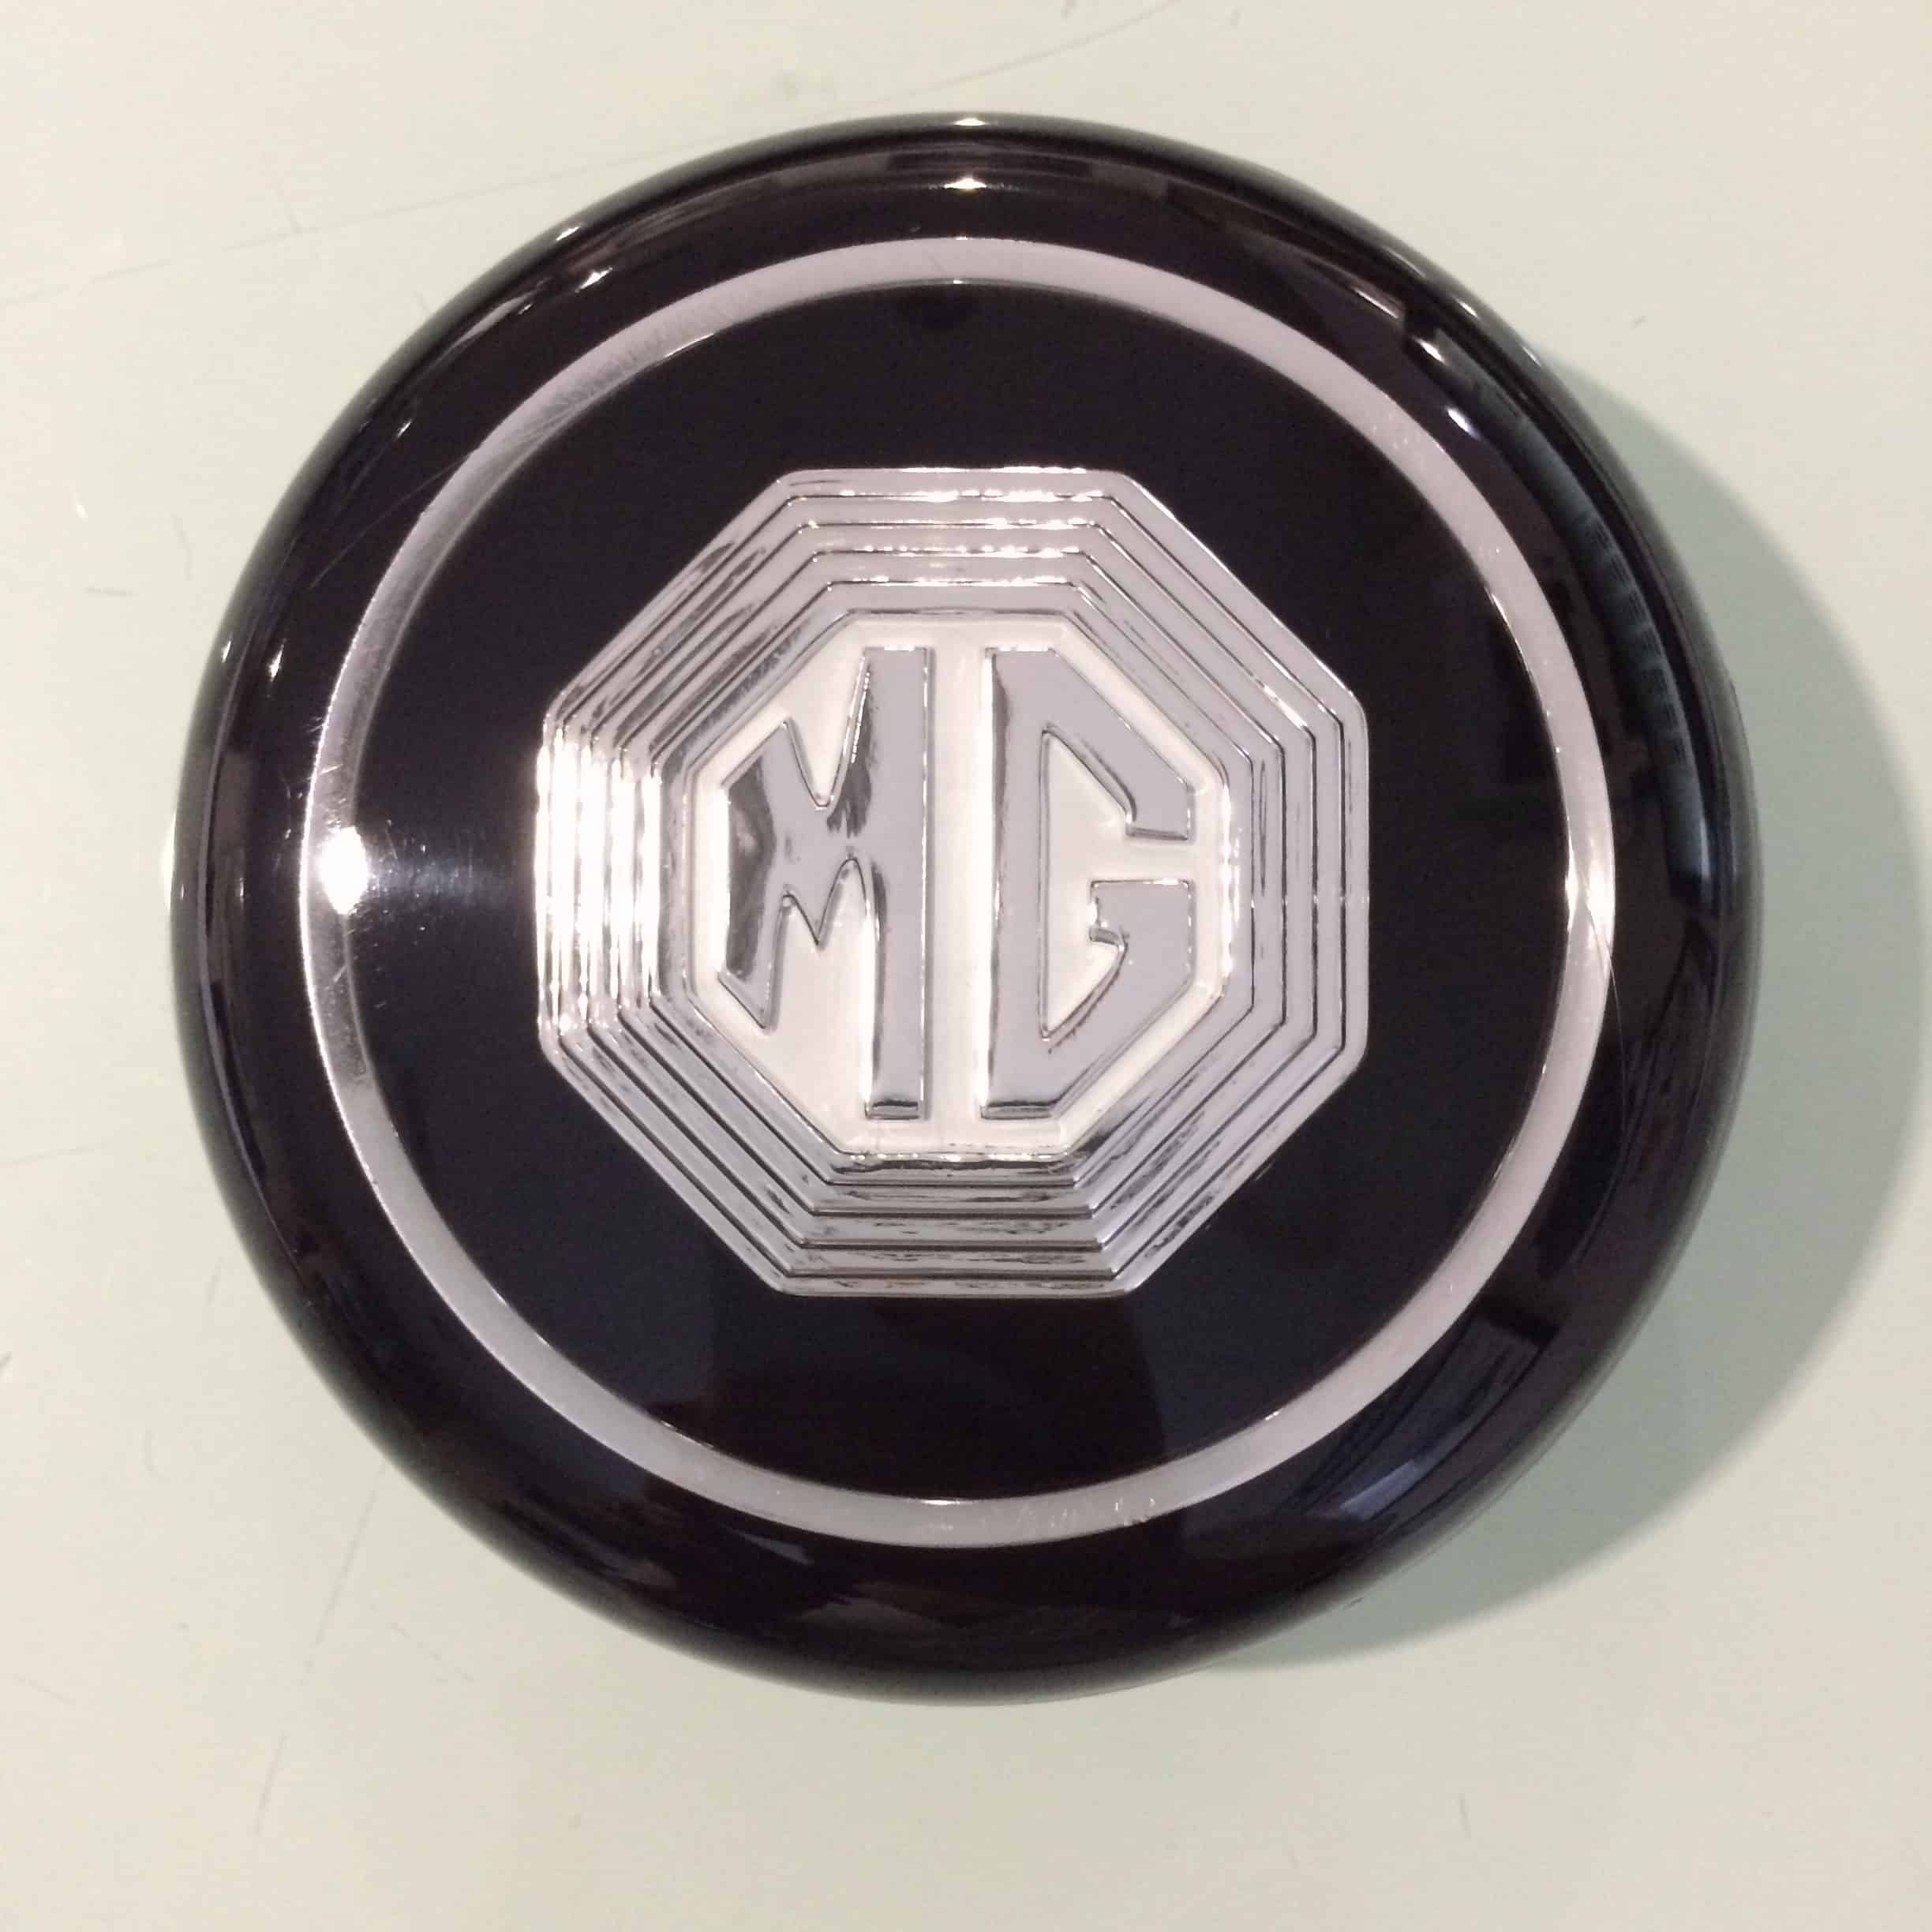 Emb Mga Roadster Coupe Steering Wheel Center Cap Emblem on Roadster Factory Triumph Parts